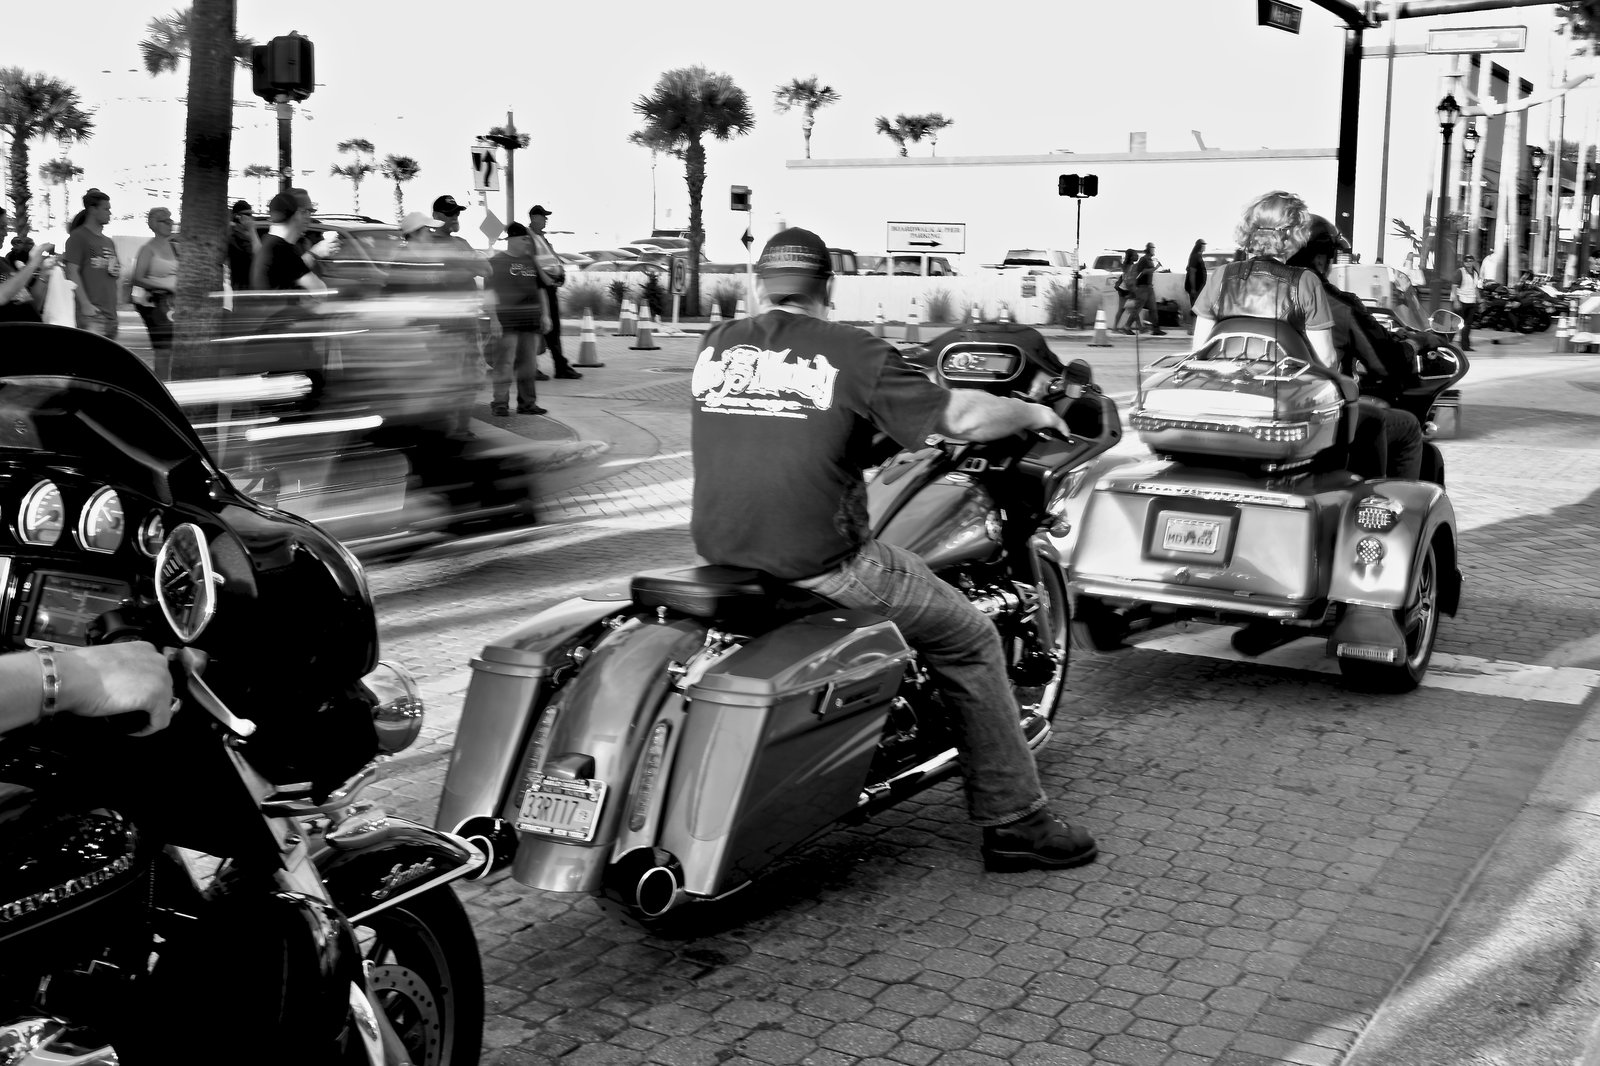 2019 Daytona Beach Bike Week, Cruising on Main Street.jpg